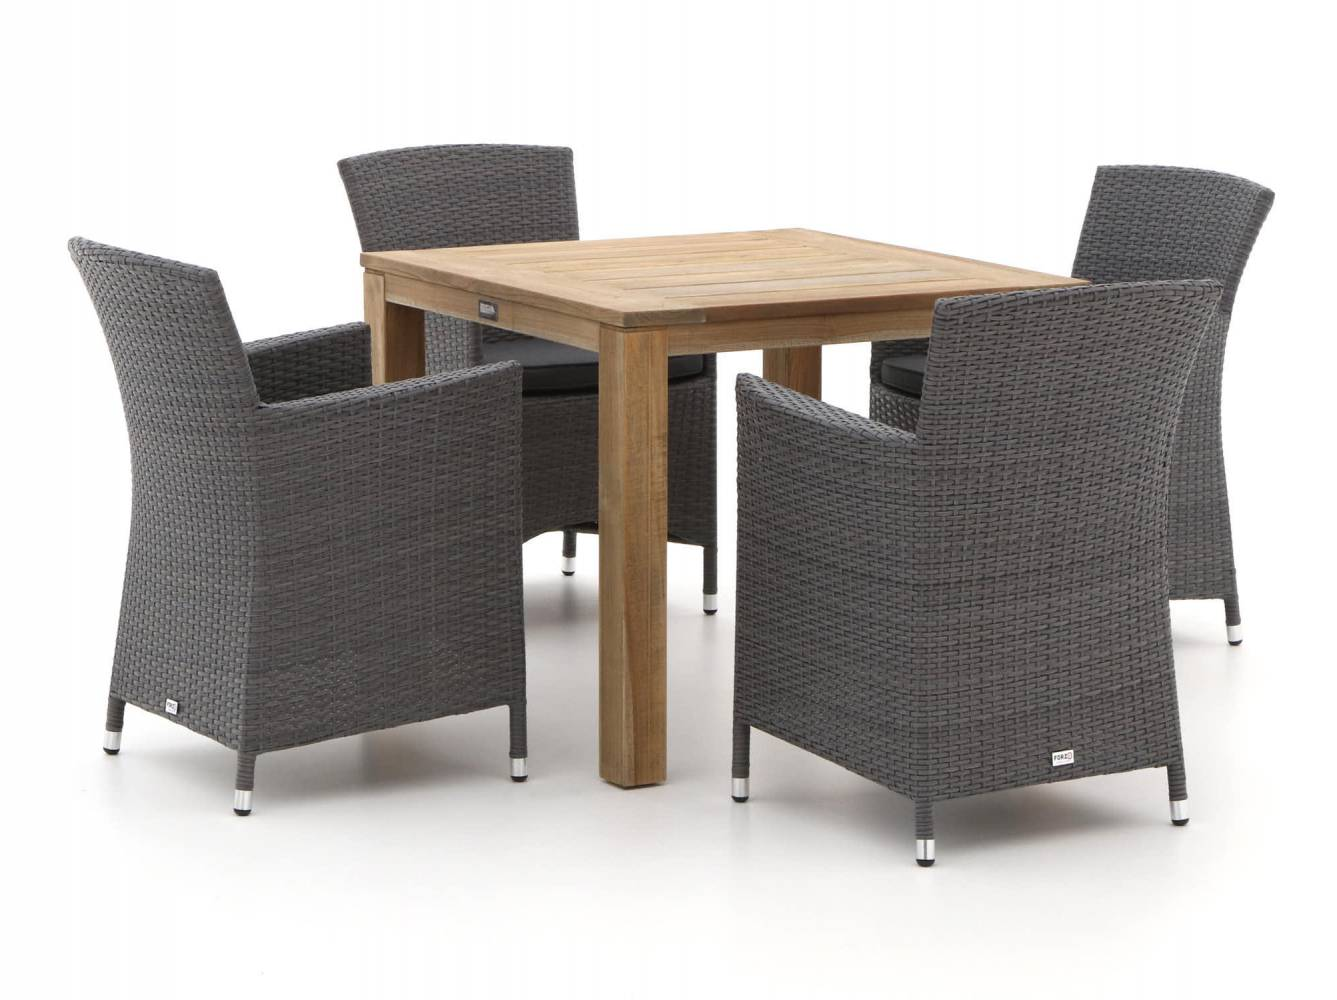 Forza Barga/ROUGH-S 90cm dining tuinset 5-delig. Laagste prijs Tuinsets